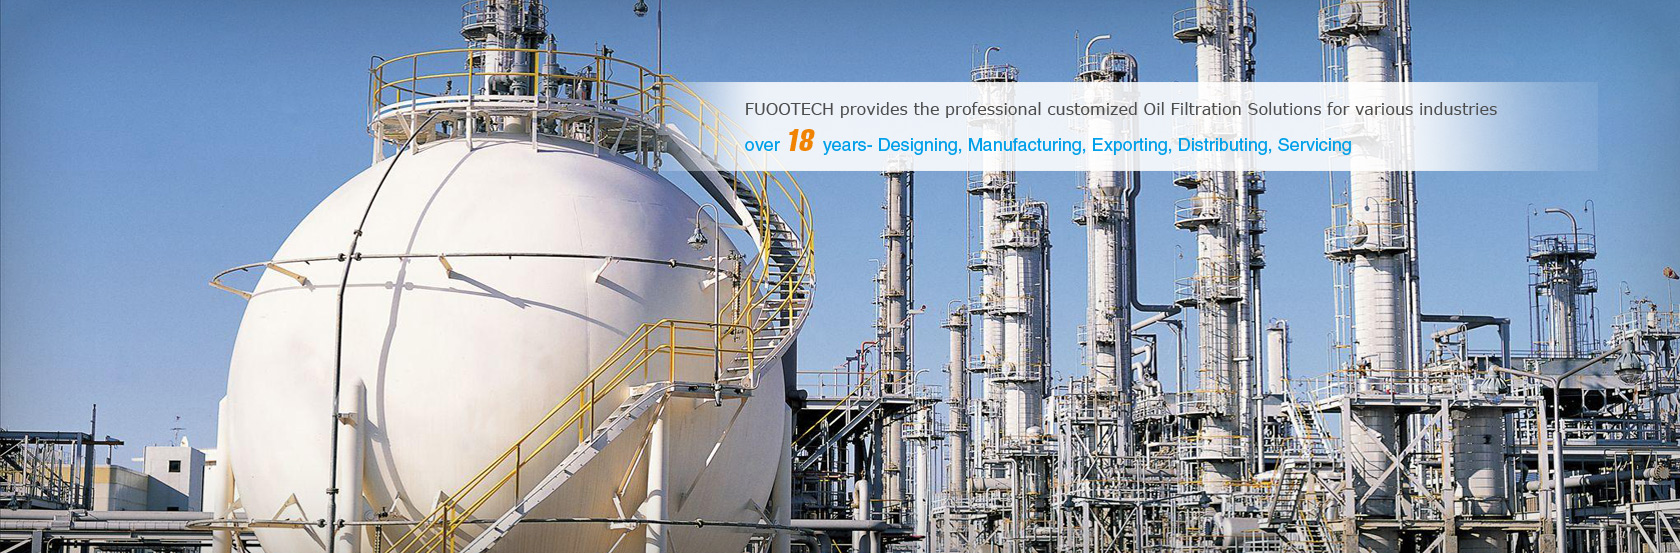 FuooTech Oil Filtration & Oil Purifier Manufacturing Group Main Image